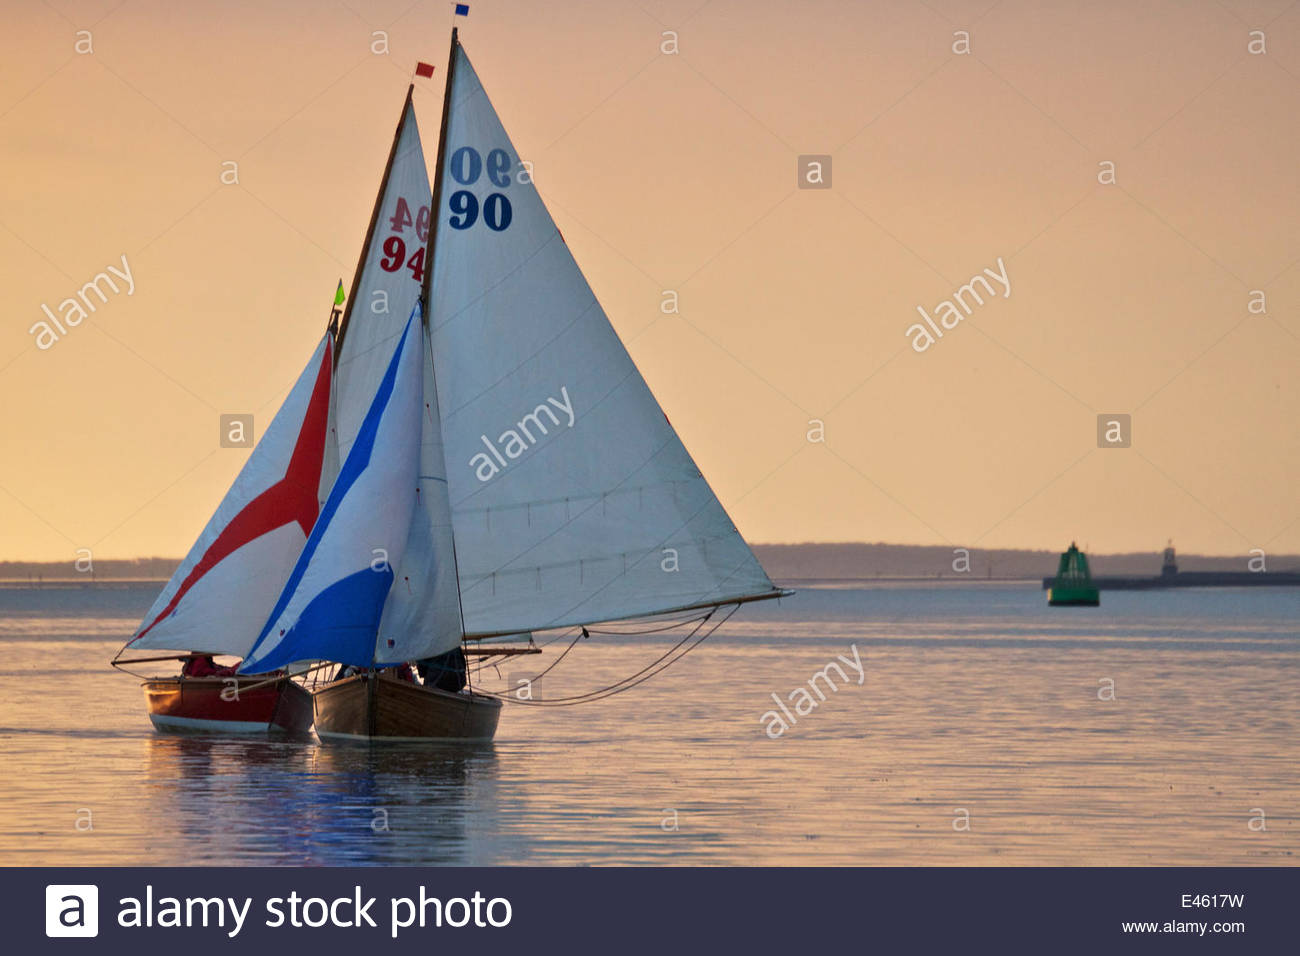 Two small sailing boats during evening regatta on the River Mersey. Liverpool, England, July 2011. - Stock Image